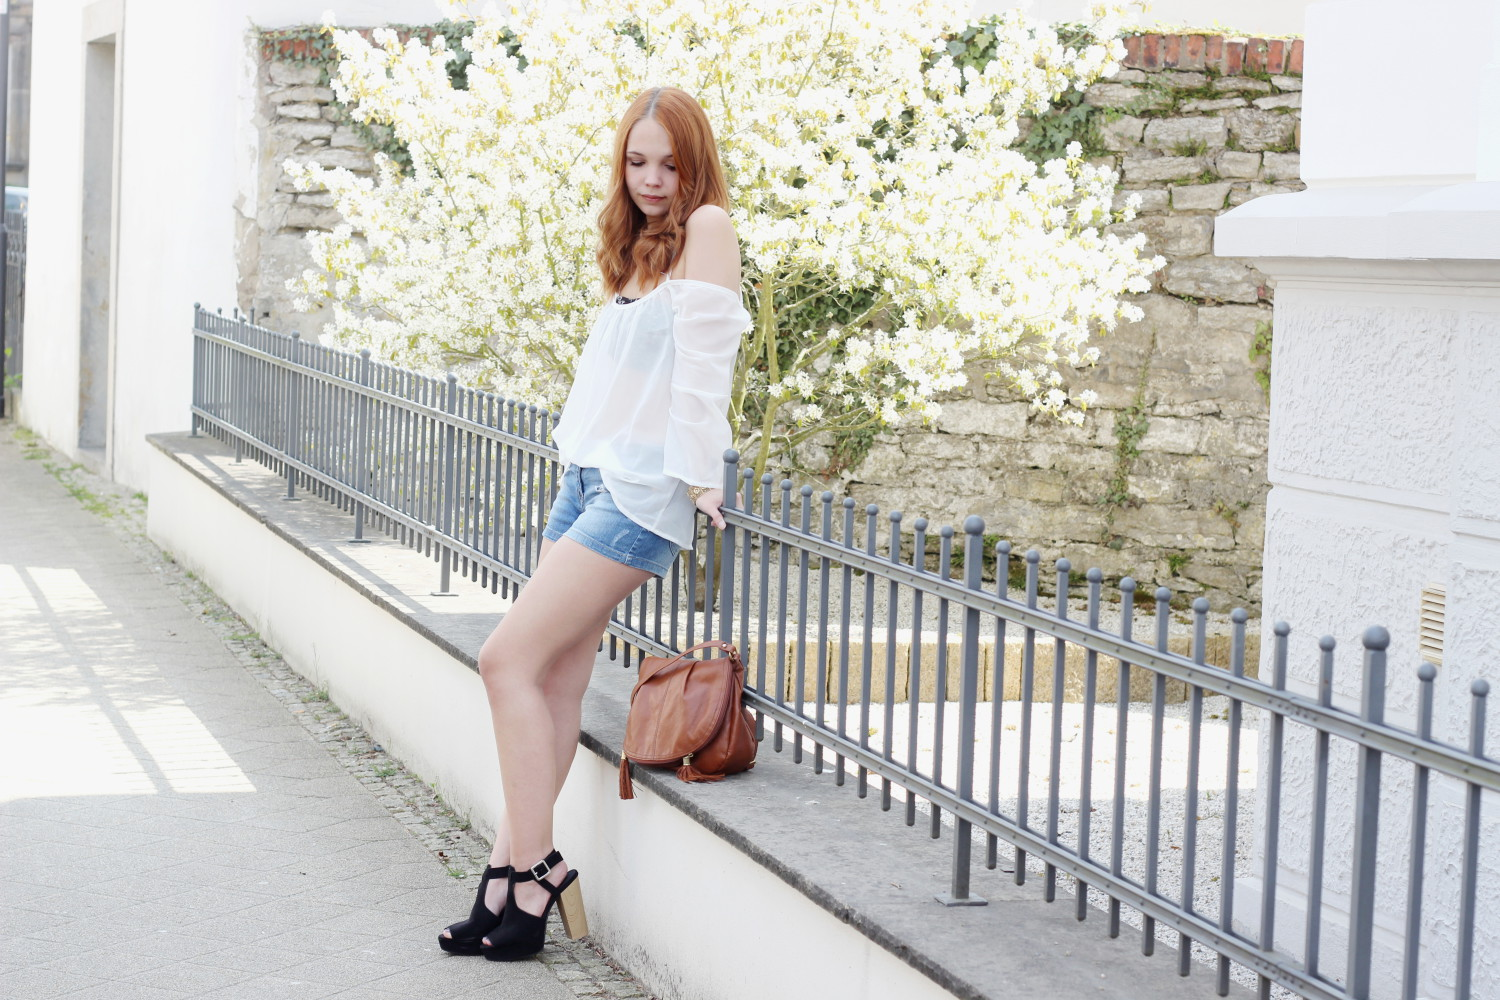 bezaubernde nana, fashionblog, germany, outfit, streetstyle, choies weiße transparente schulterfrei rückenfrei bluse, clockhouse denim shorts, only bandeau top, h&m braune tasche mit fransen, h&m schwarze sandaletten mit holzabsatz, goldenes armband, frühlings outfit